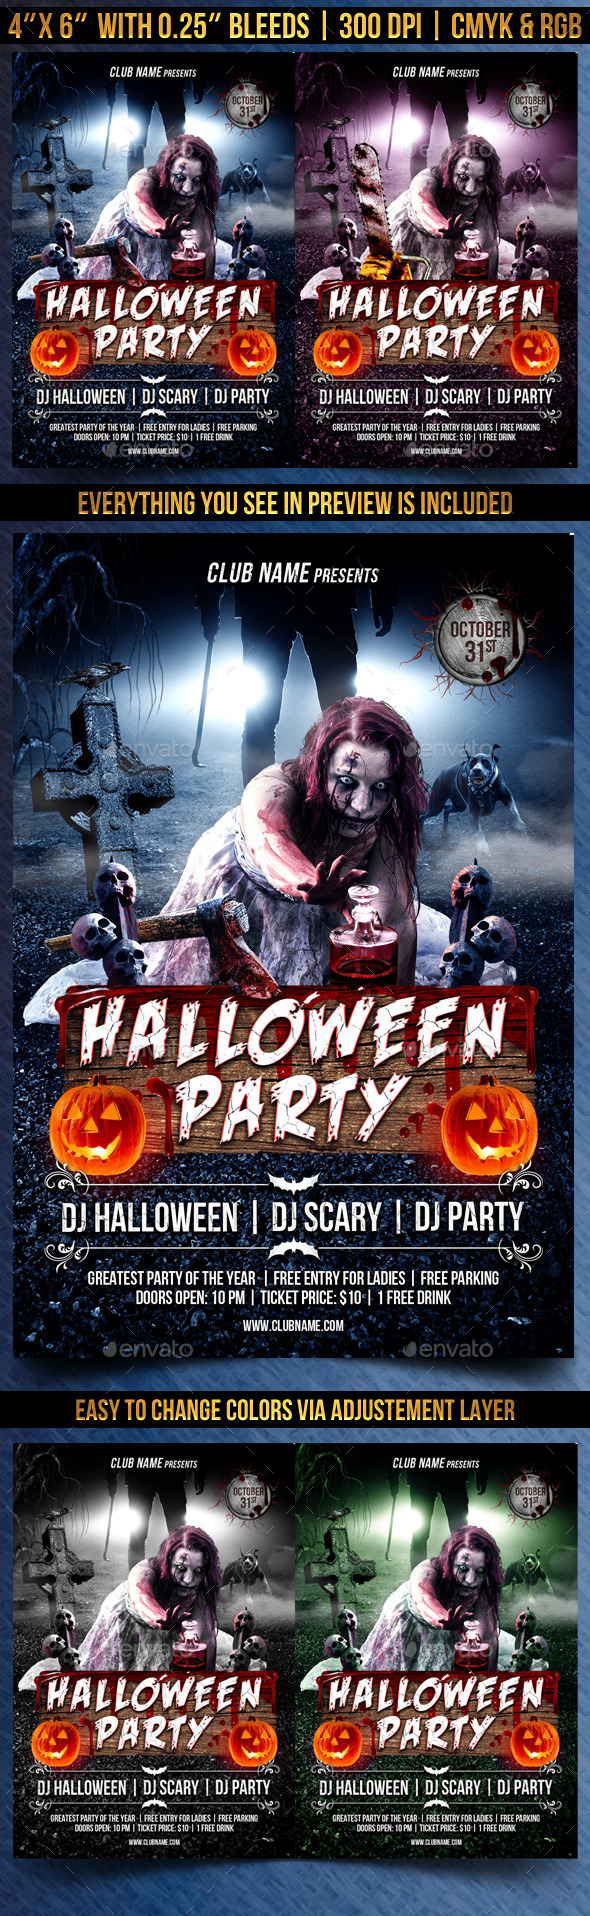 Scary Halloween Party Flyer - Clubs & Parties Events